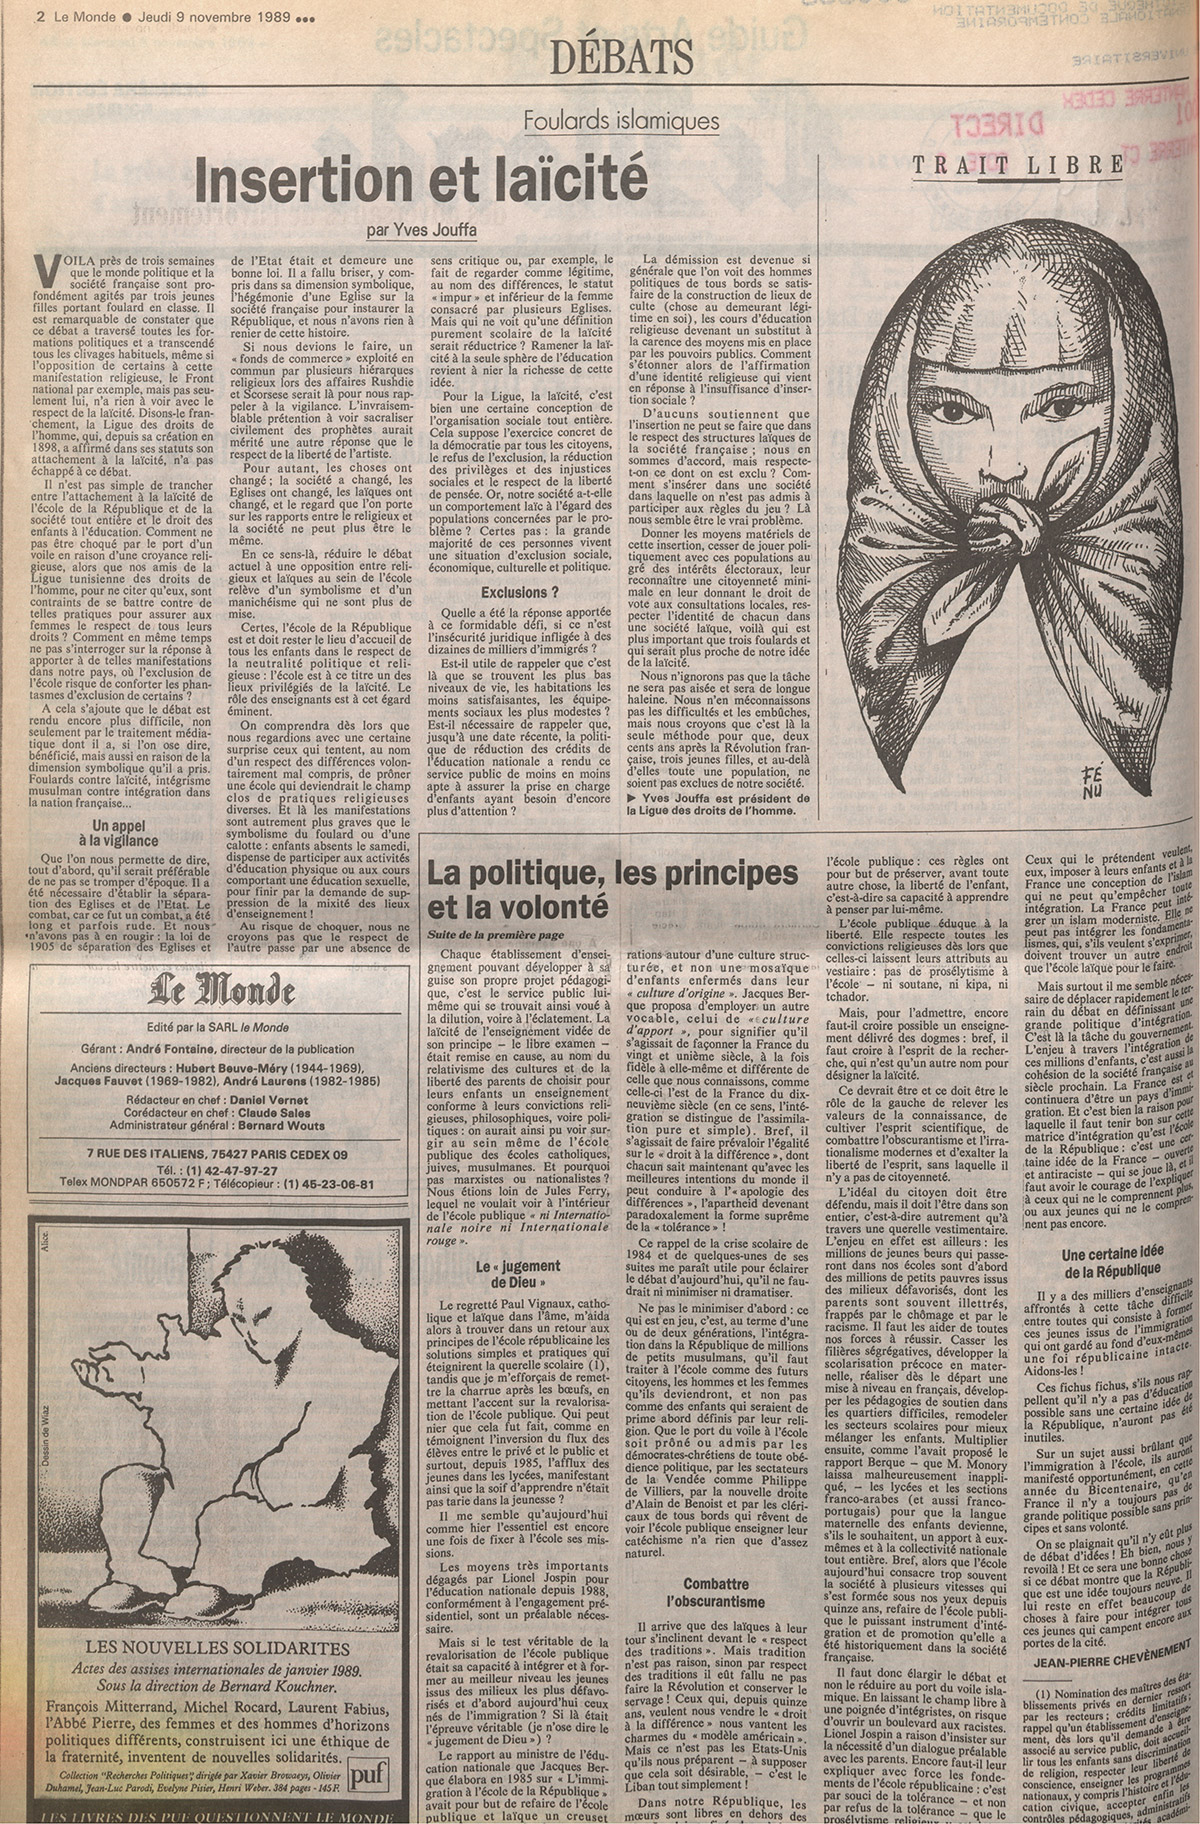 Insertion et laïcité in Le Monde, 9 novembre 1989